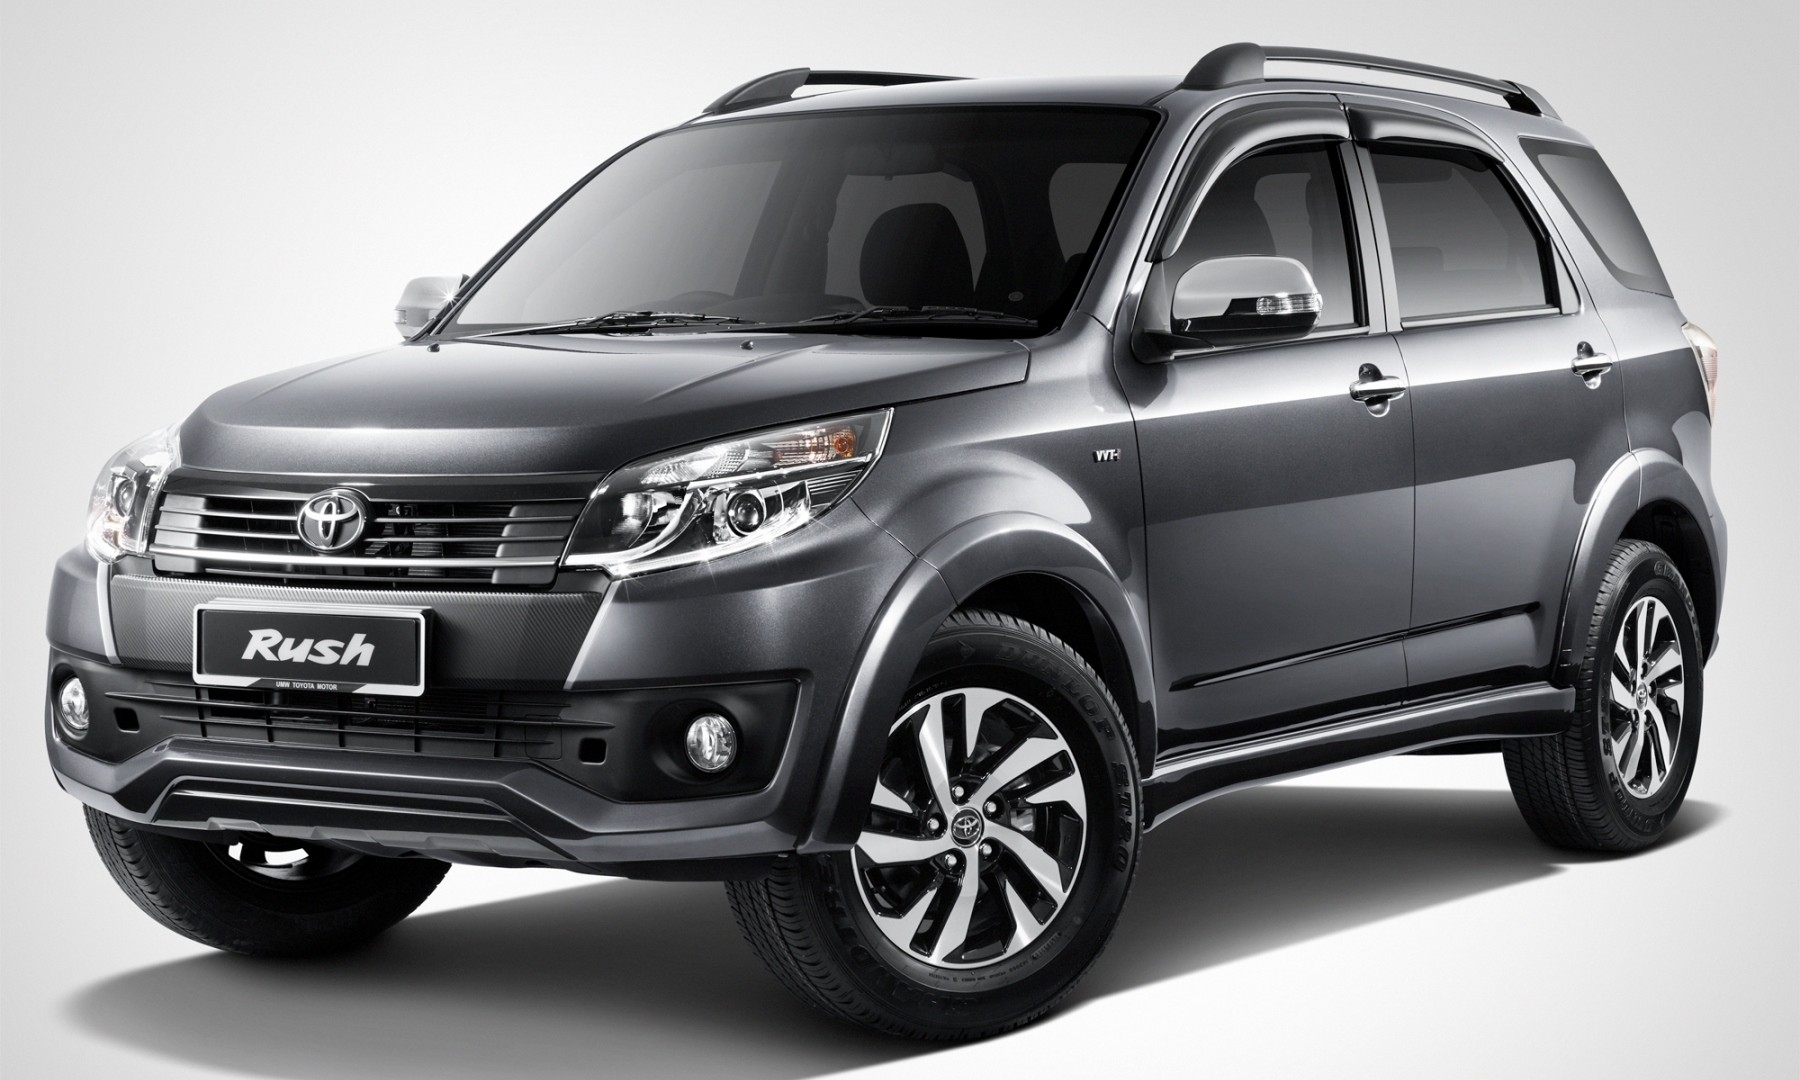 2015 Toyota Rush Facelift Introduced In Malaysia Paul Tan